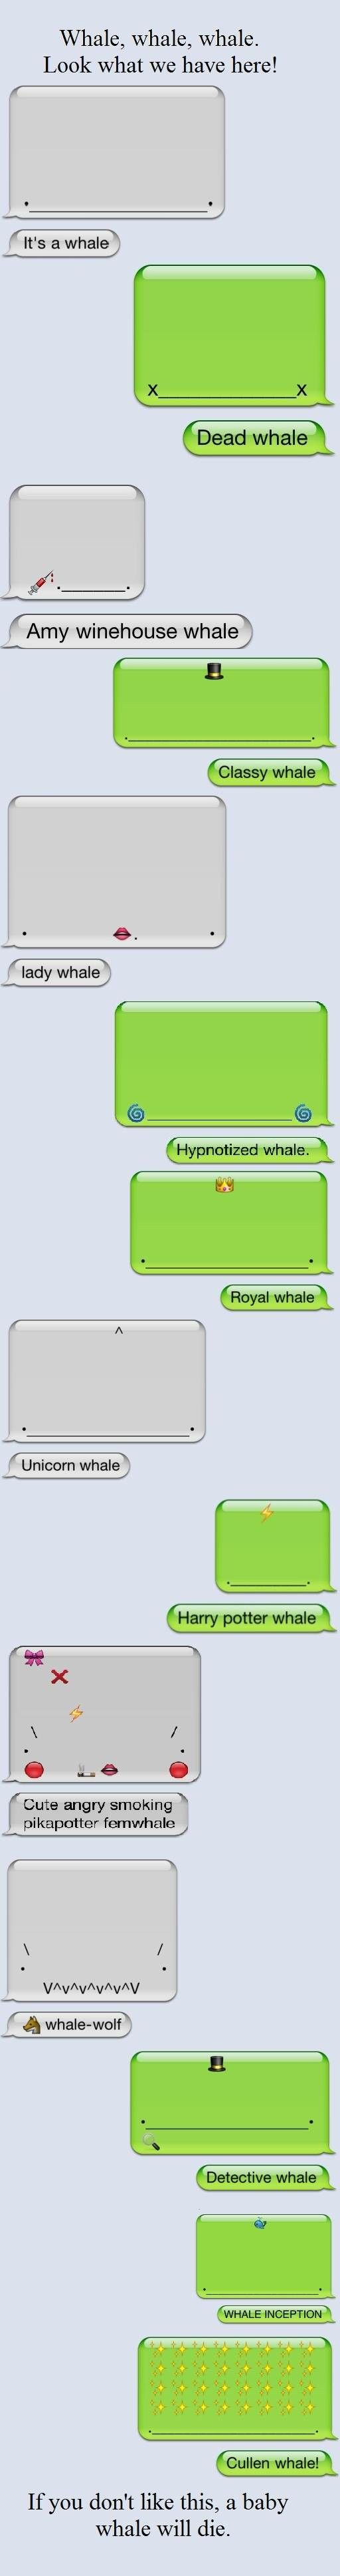 All of the whales. (Anyone else think this could be a conversation between Eridan and Feferi?)